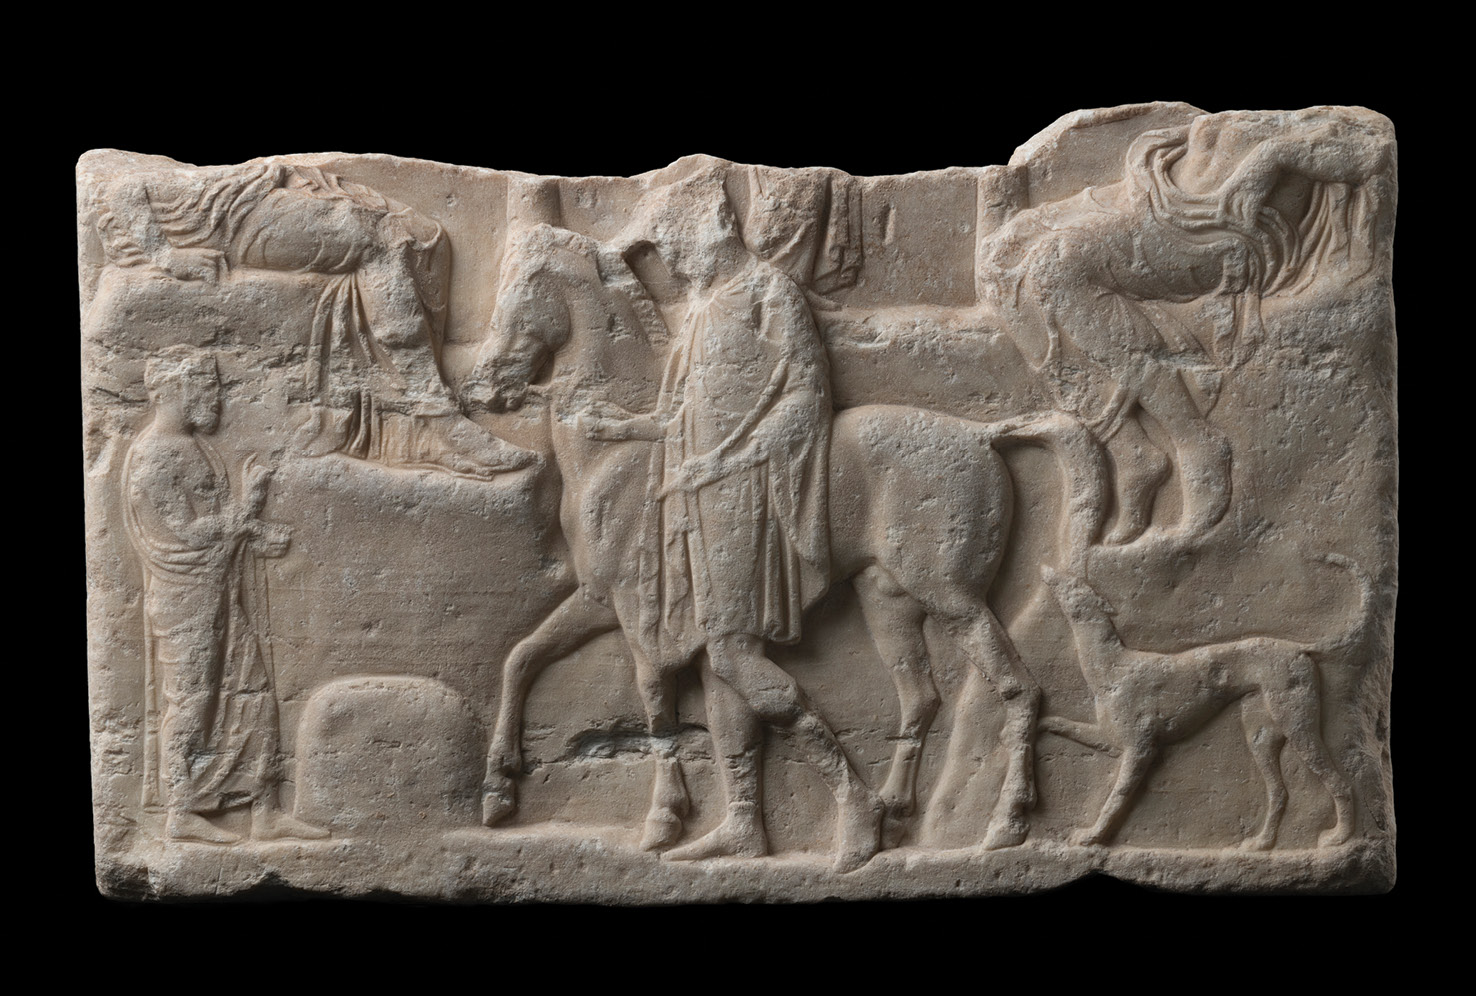 BELOW This votive relief dates to the 5th century BC and probably came from the acropolis in Athens. It shows a man holding a horse, with a dog behind, while the bottom portion of a god and goddess can be seen perched on a rocky slope. The sculpture was reportedly discovered during digging near Herodes' estate in Rome, and so it probably passed from a 2nd-century AD collection to a 19th-century one.